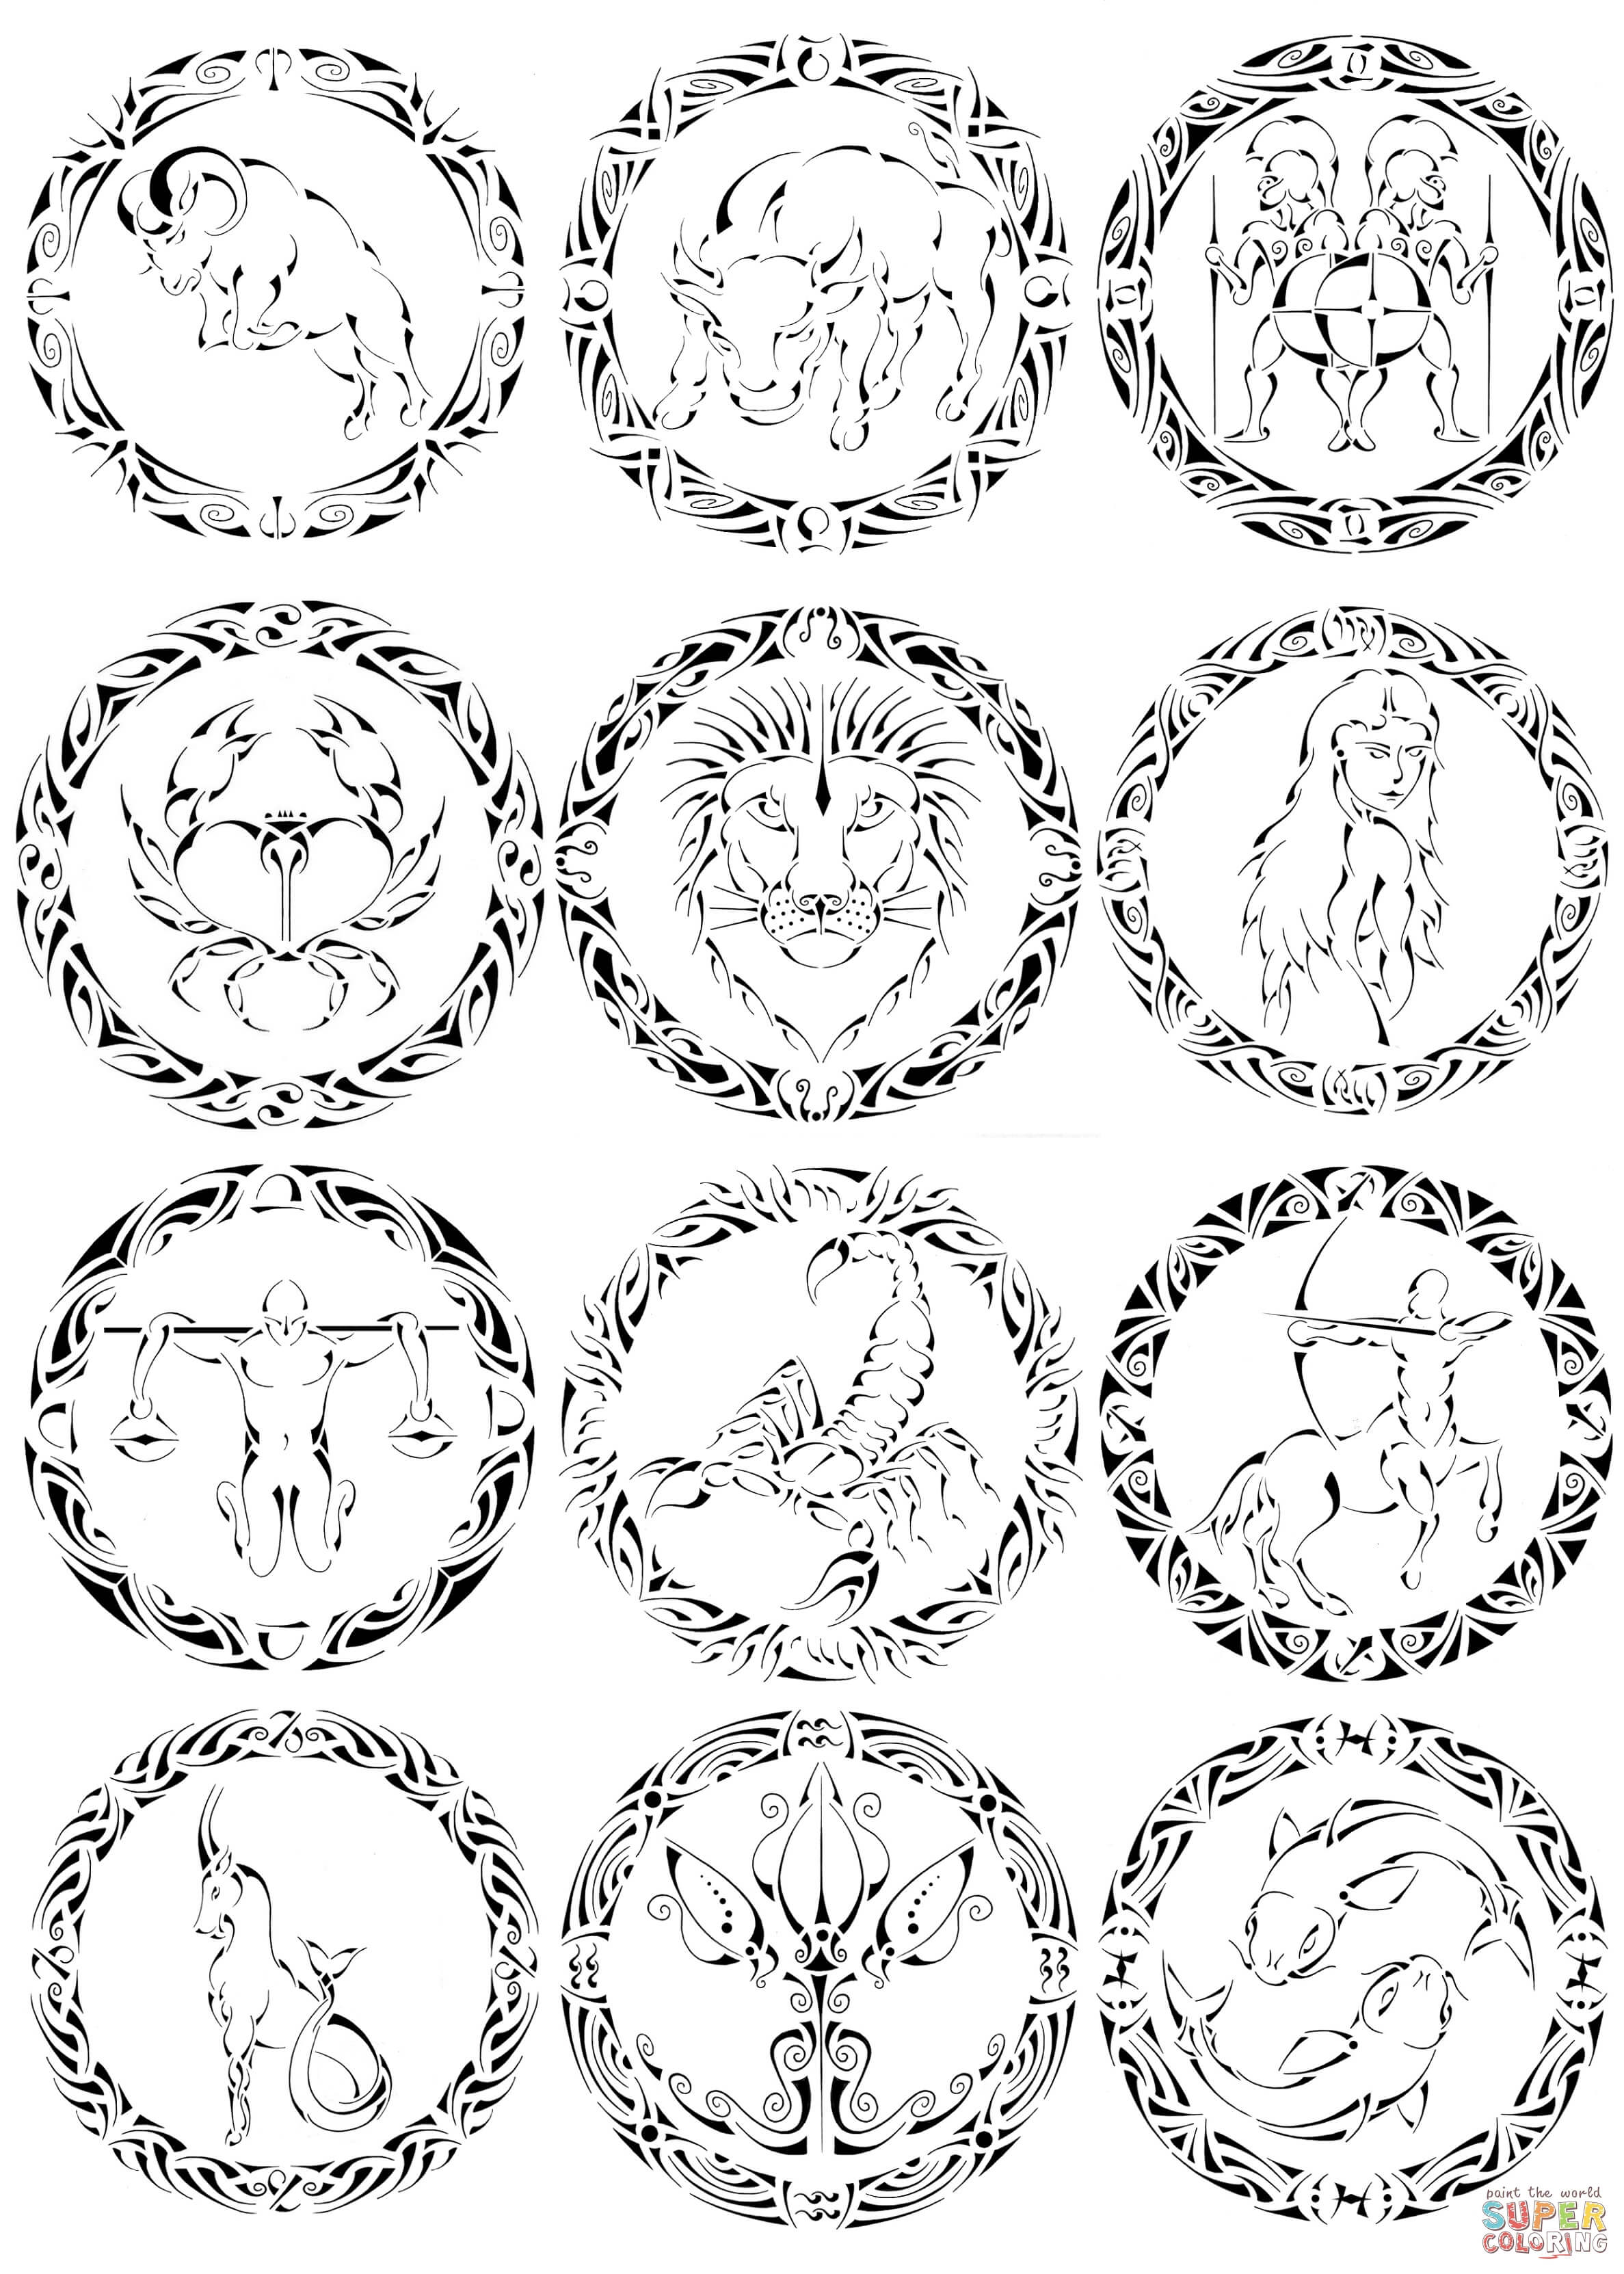 zodiac coloring pages zodiac signs coloring pages coloring pages to download pages zodiac coloring